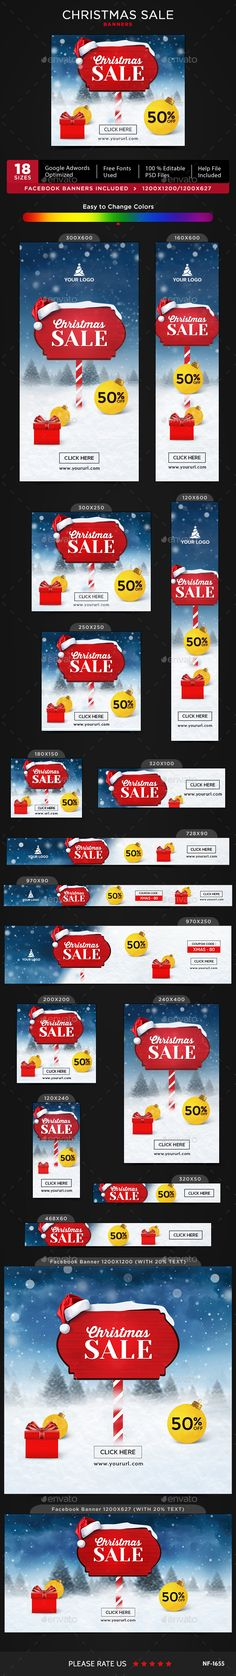 Christmas Banners — Photoshop PSD #x-mas #social media • Available here → https://graphicriver.net/item/christmas-banners/19176304?ref=pxcr